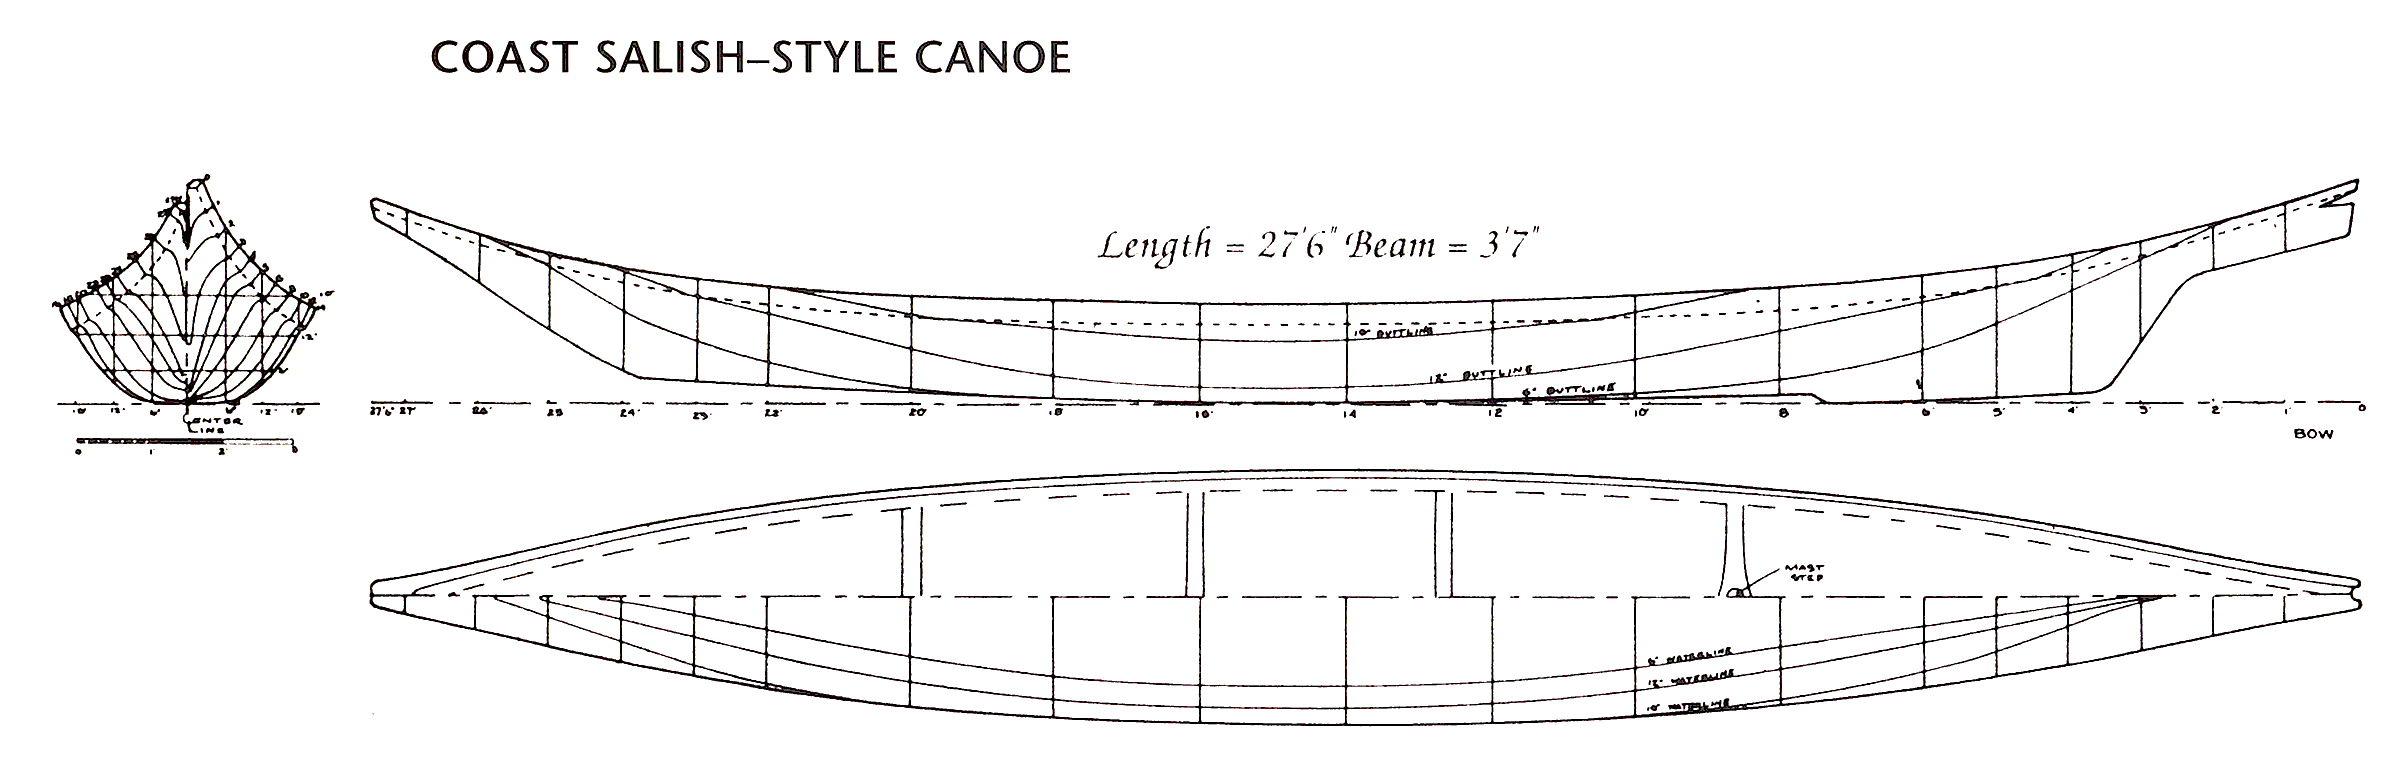 Canoe designs of the First Nations of the Pacific Northwest